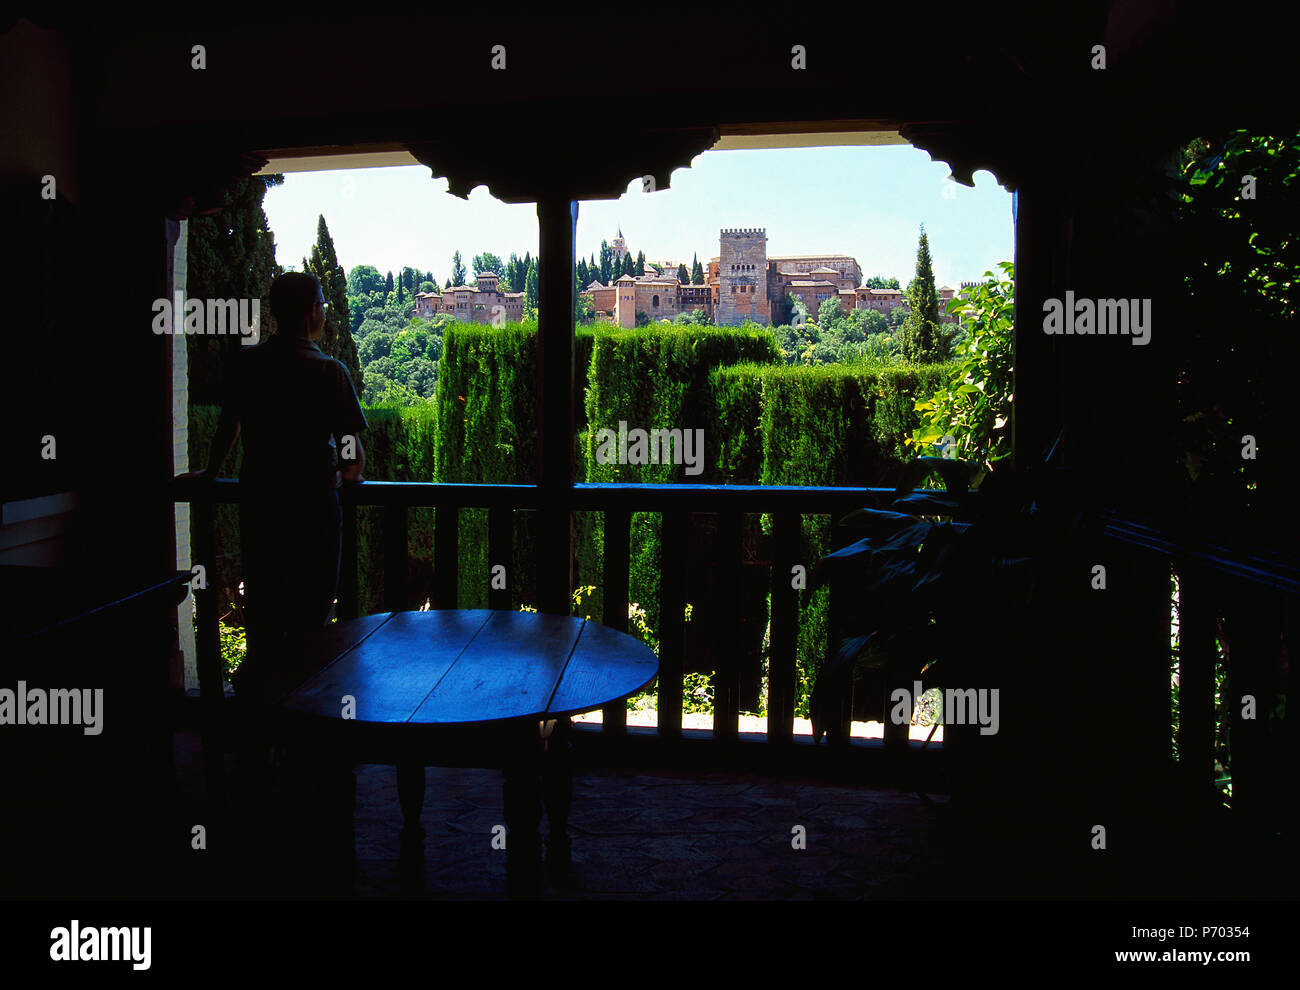 Balcony and view of the Alhambra. Granada, Spain. - Stock Image